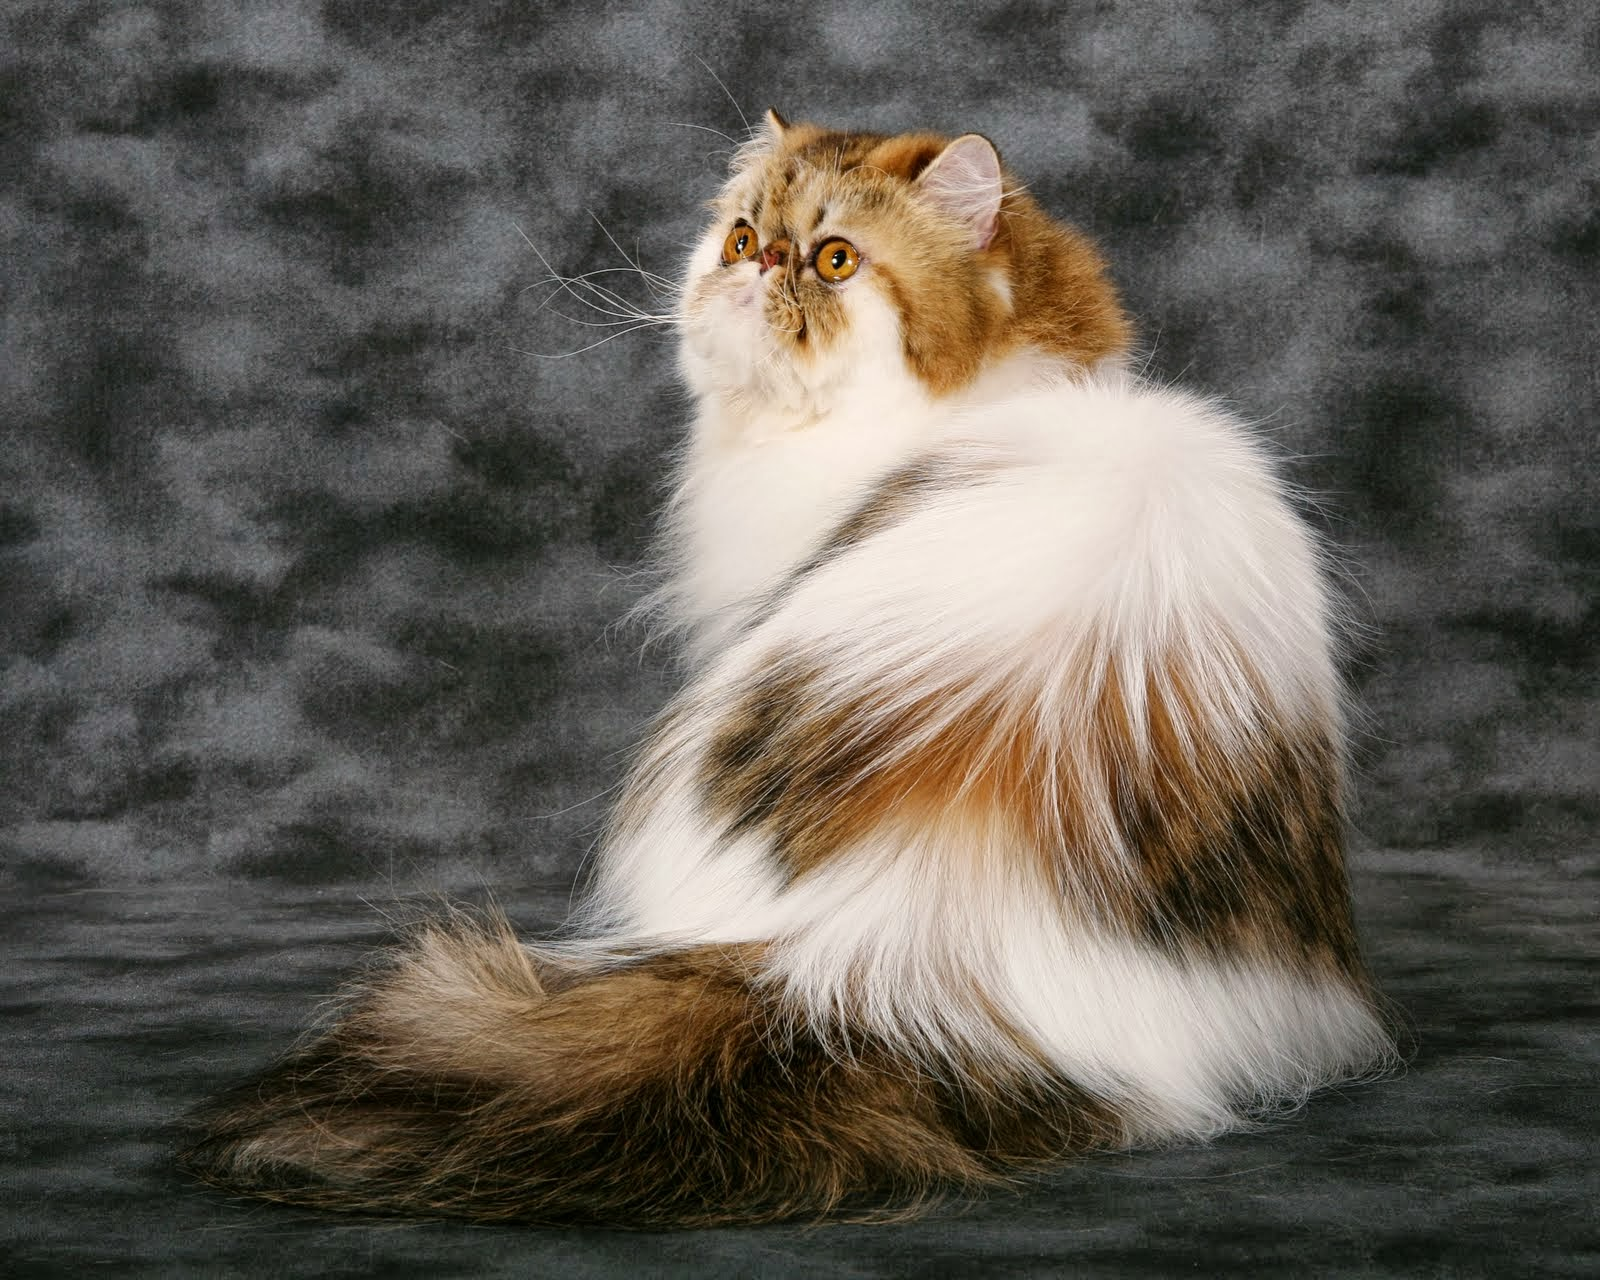 The Persian cat (Persian: گربه ایرانی Gorbe Irâni) is a long-haired breed of cat characterized by its round face and short muzzle. It is also known as the